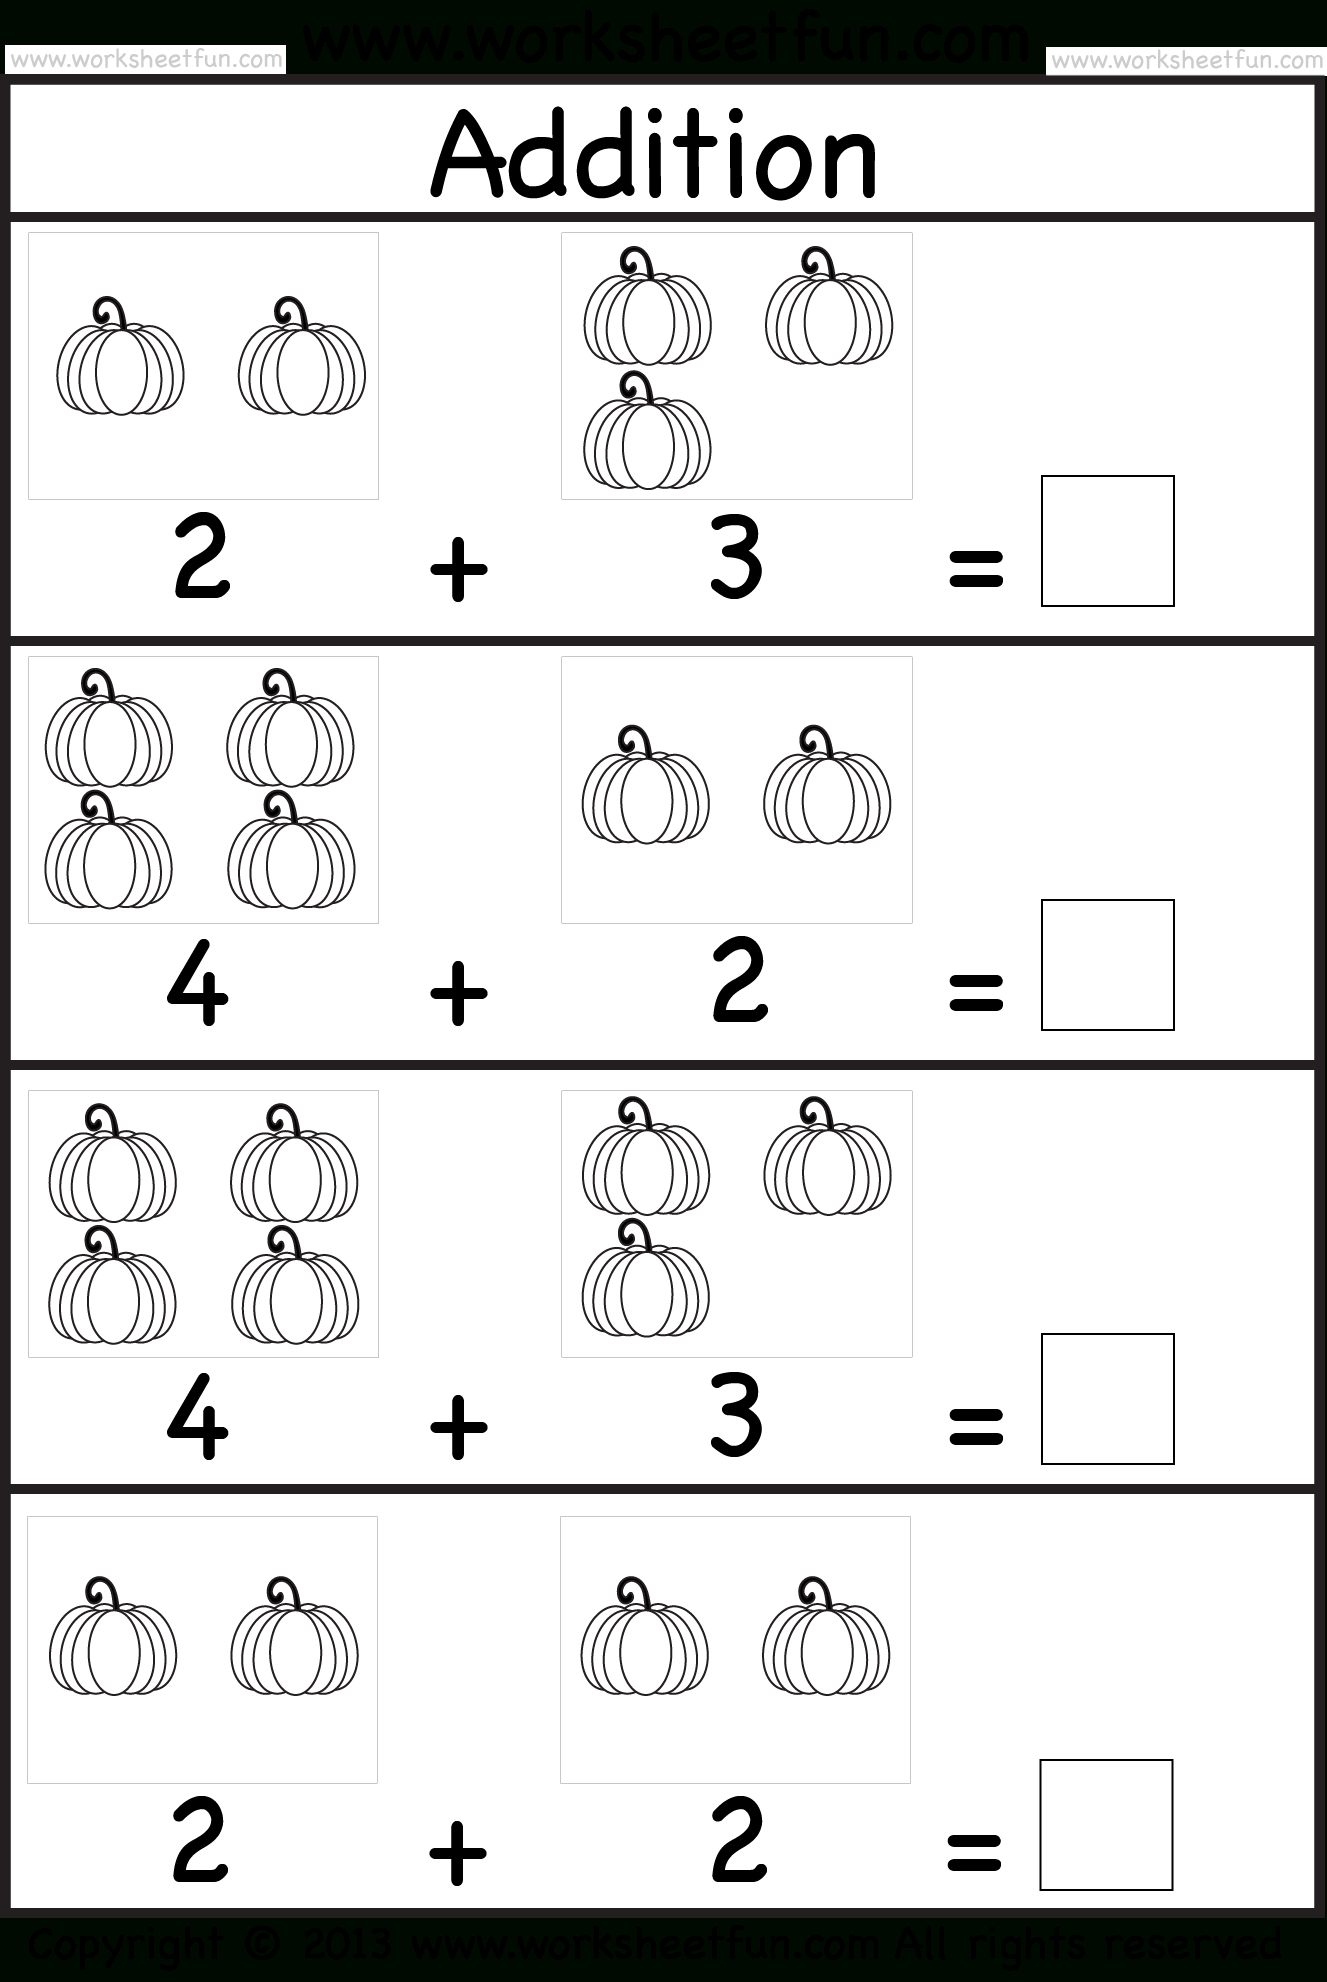 Additionsubtraction Numbers 1 10 Kinder  Lessons  Tes Teach With Free Addition Worksheets For Kindergarten